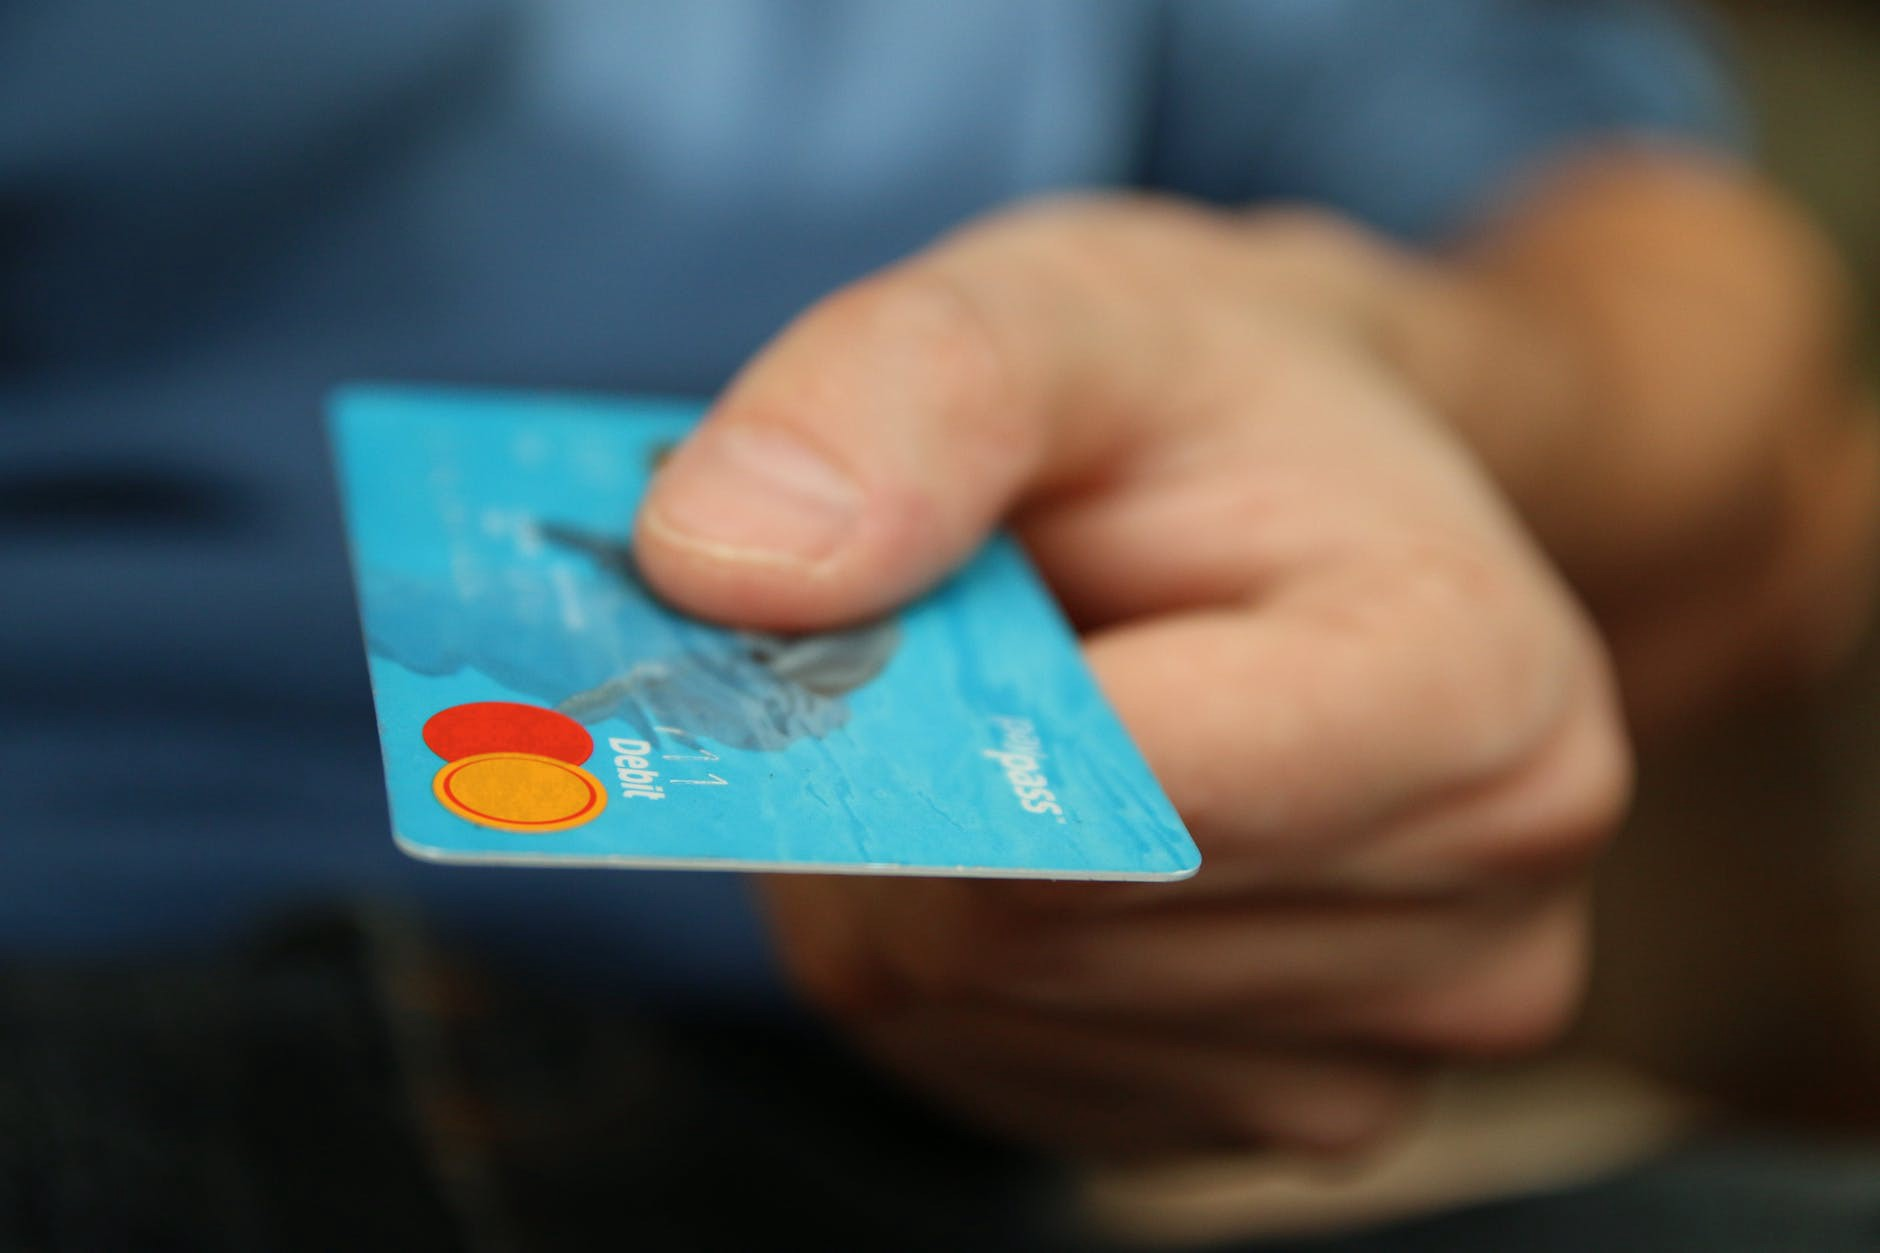 Person holding out a credit card